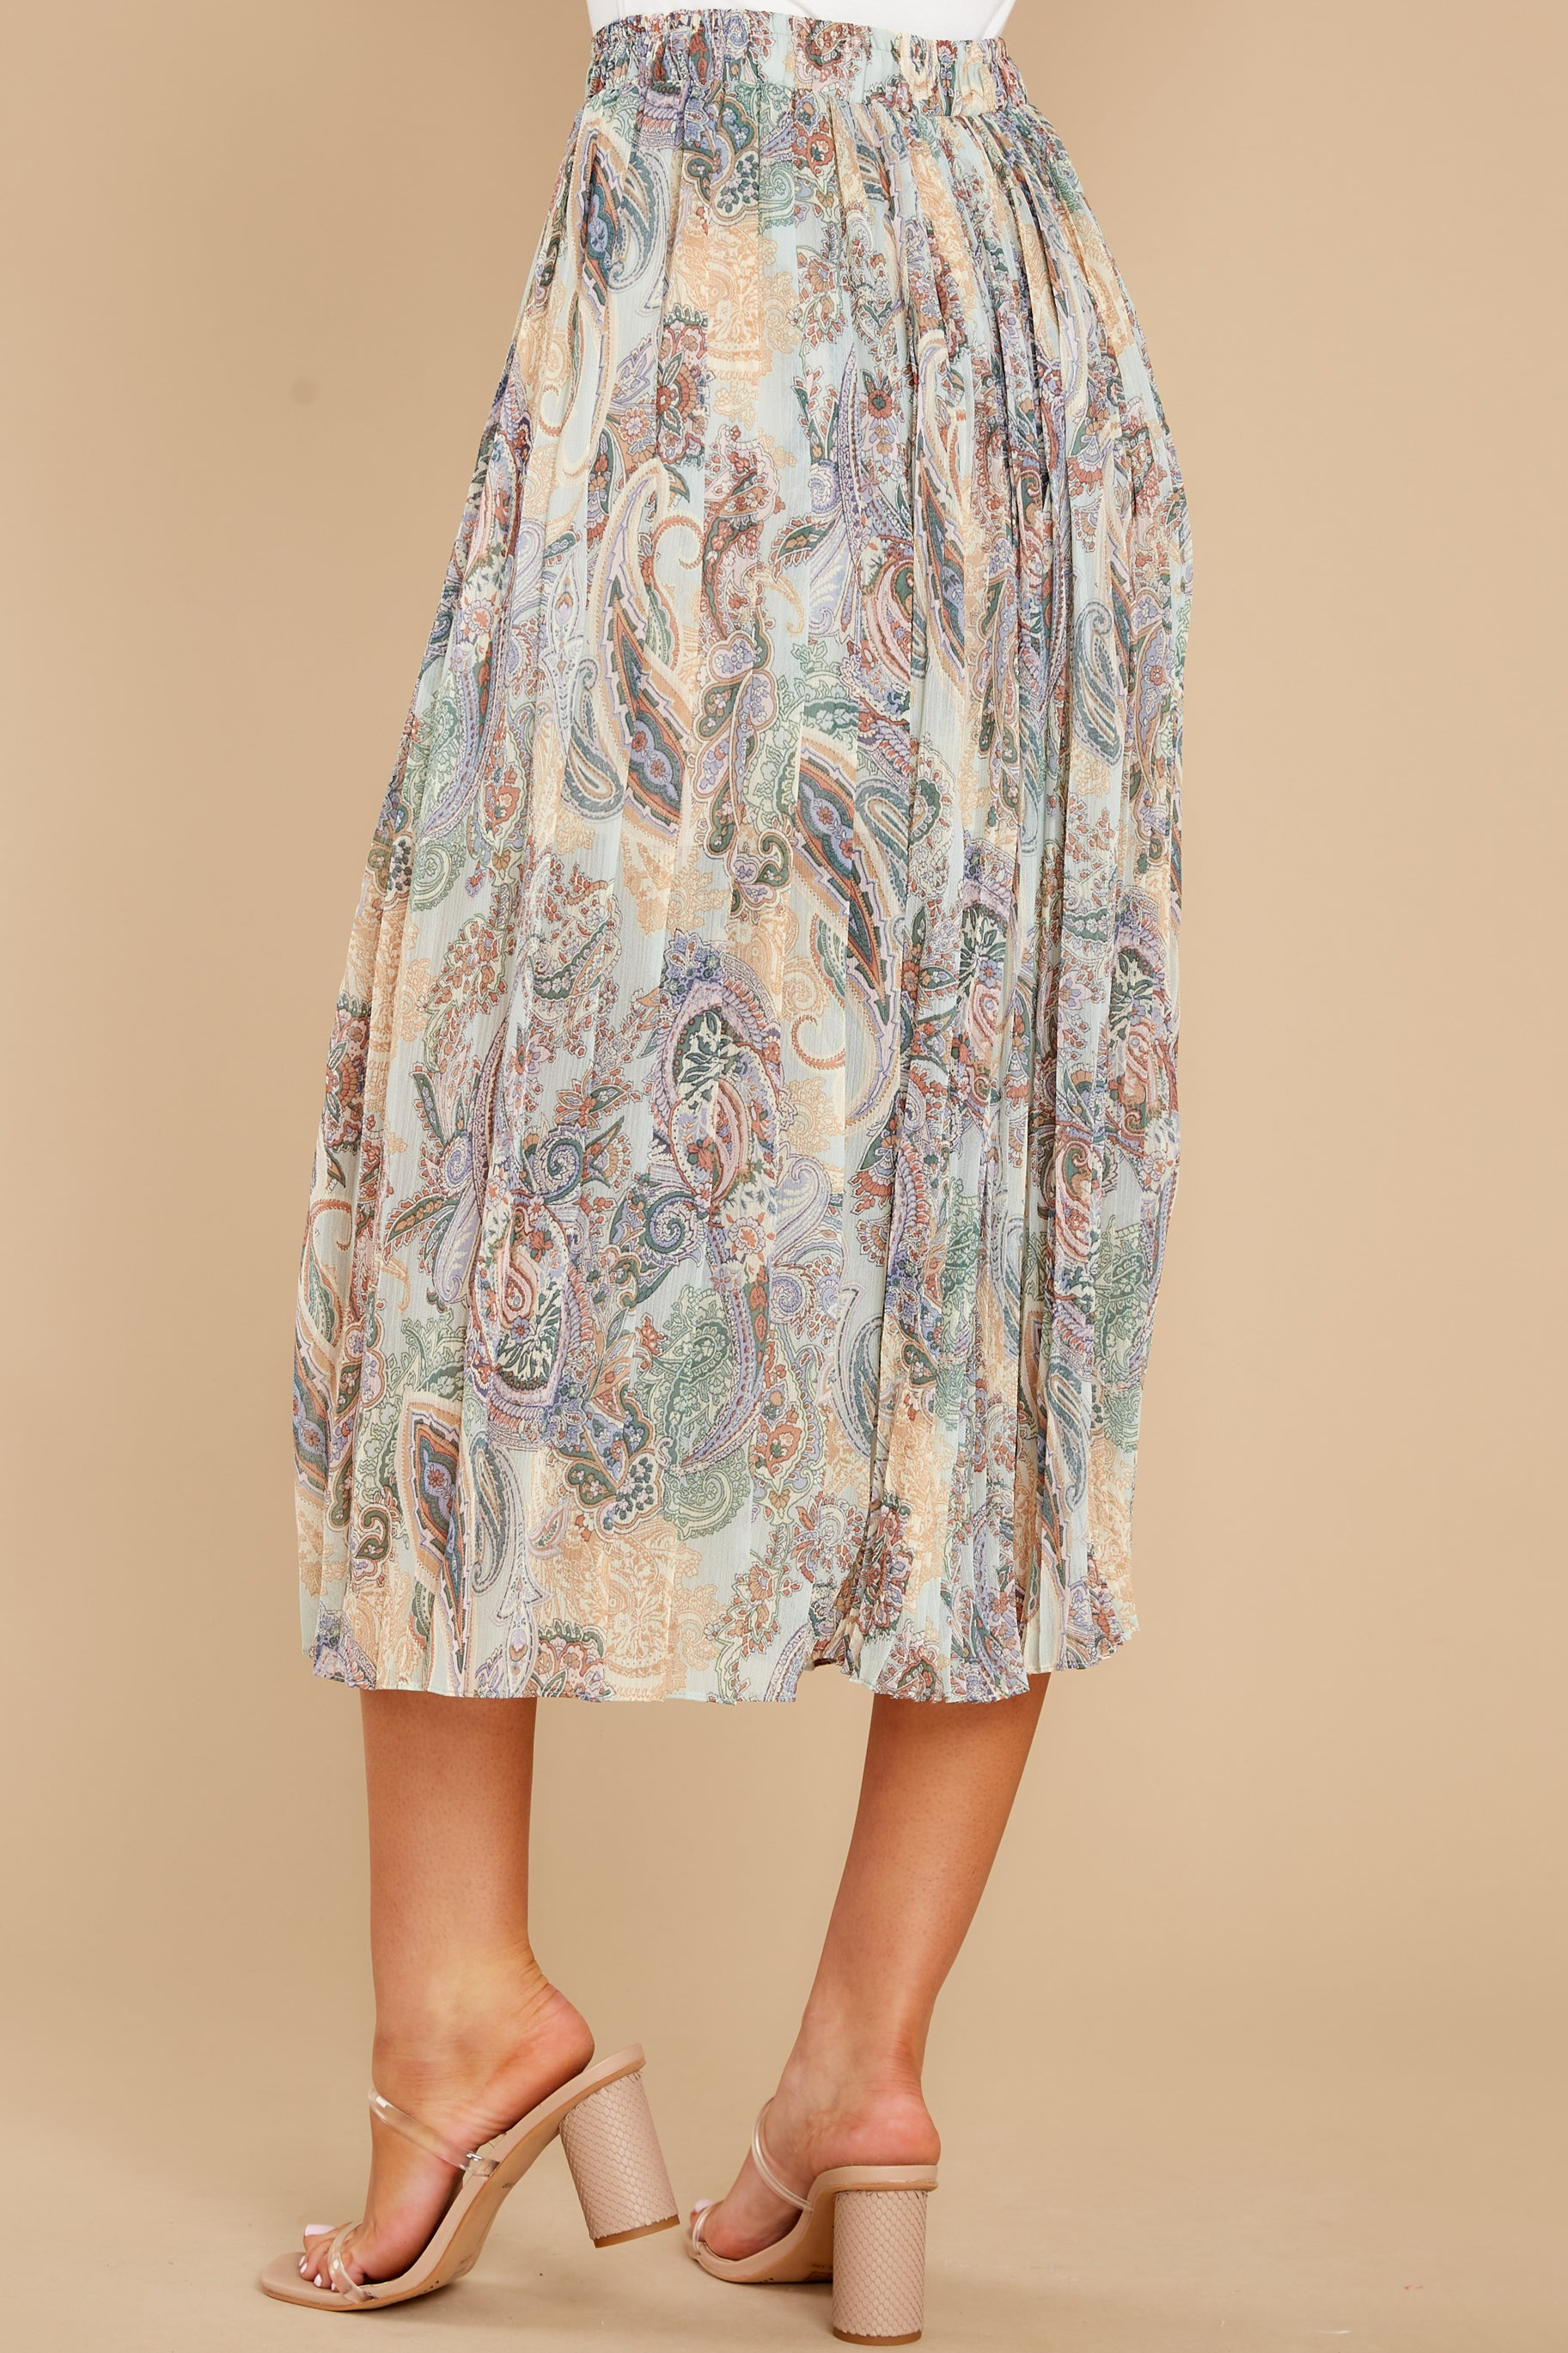 3 In Another Life Mint Paisley Print Midi Skirt at reddress.com